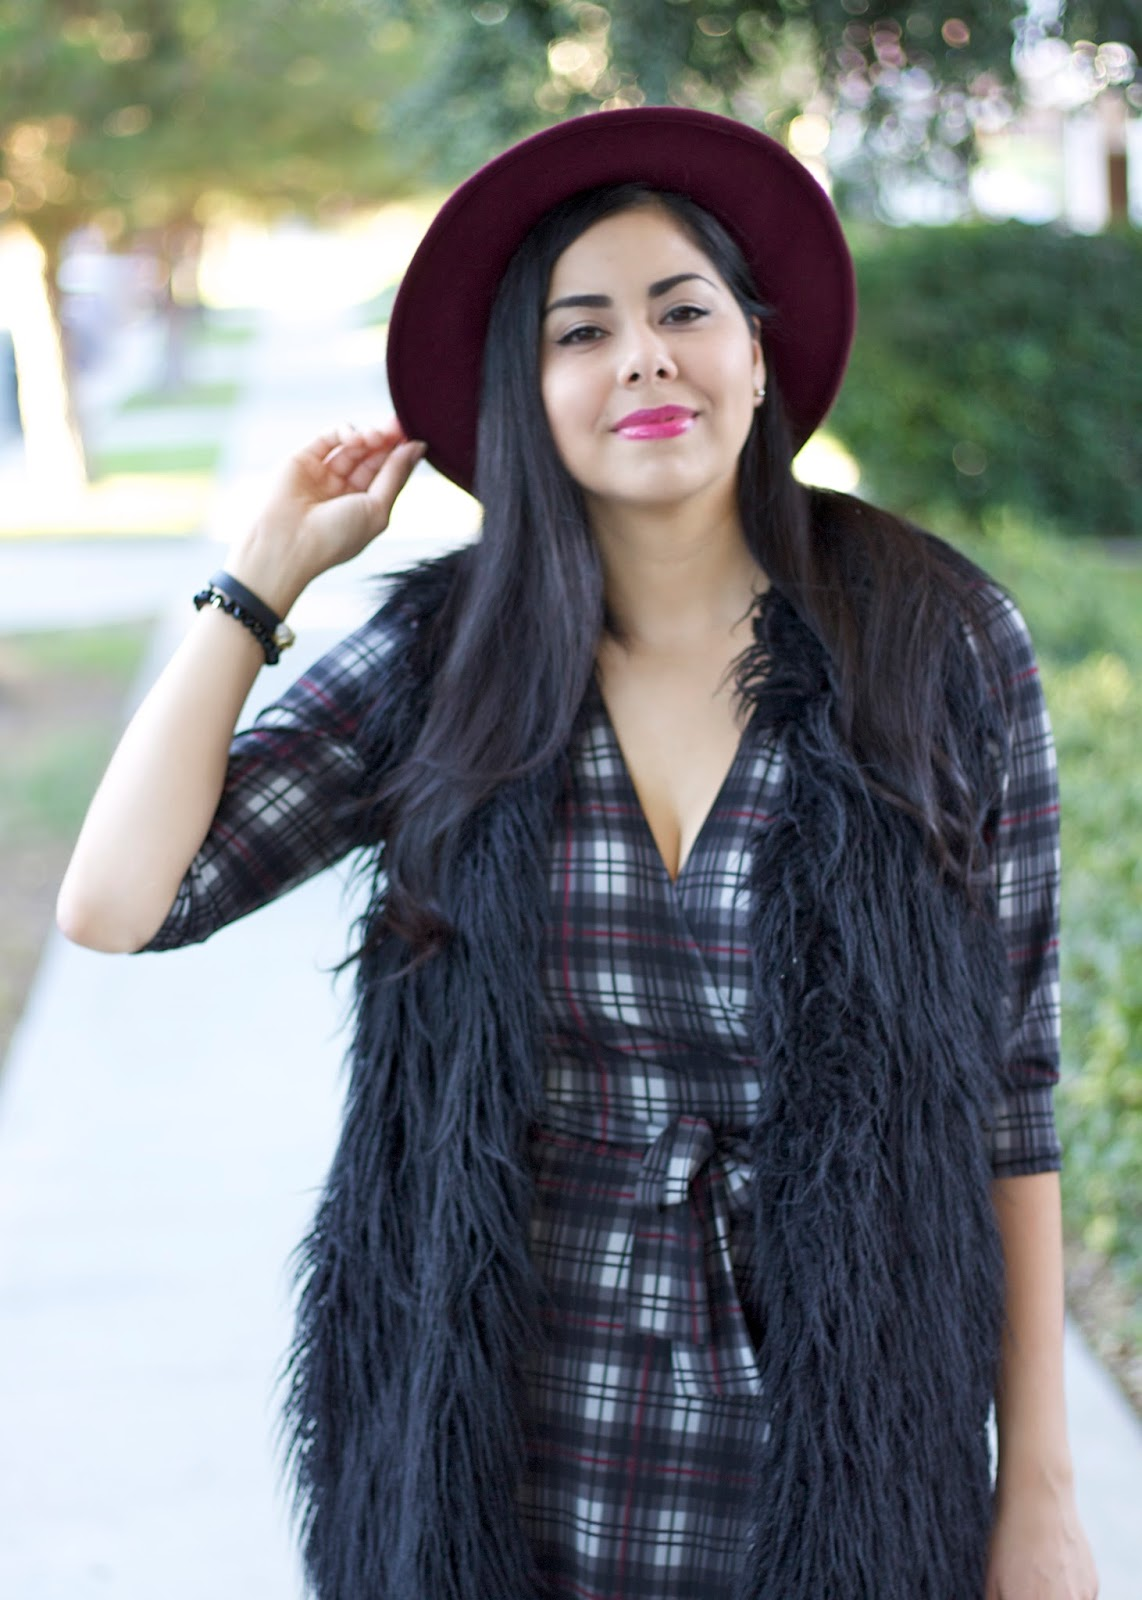 Plaid and faux fur, burgundy fedora, target merona fedora, plaid and fau fur